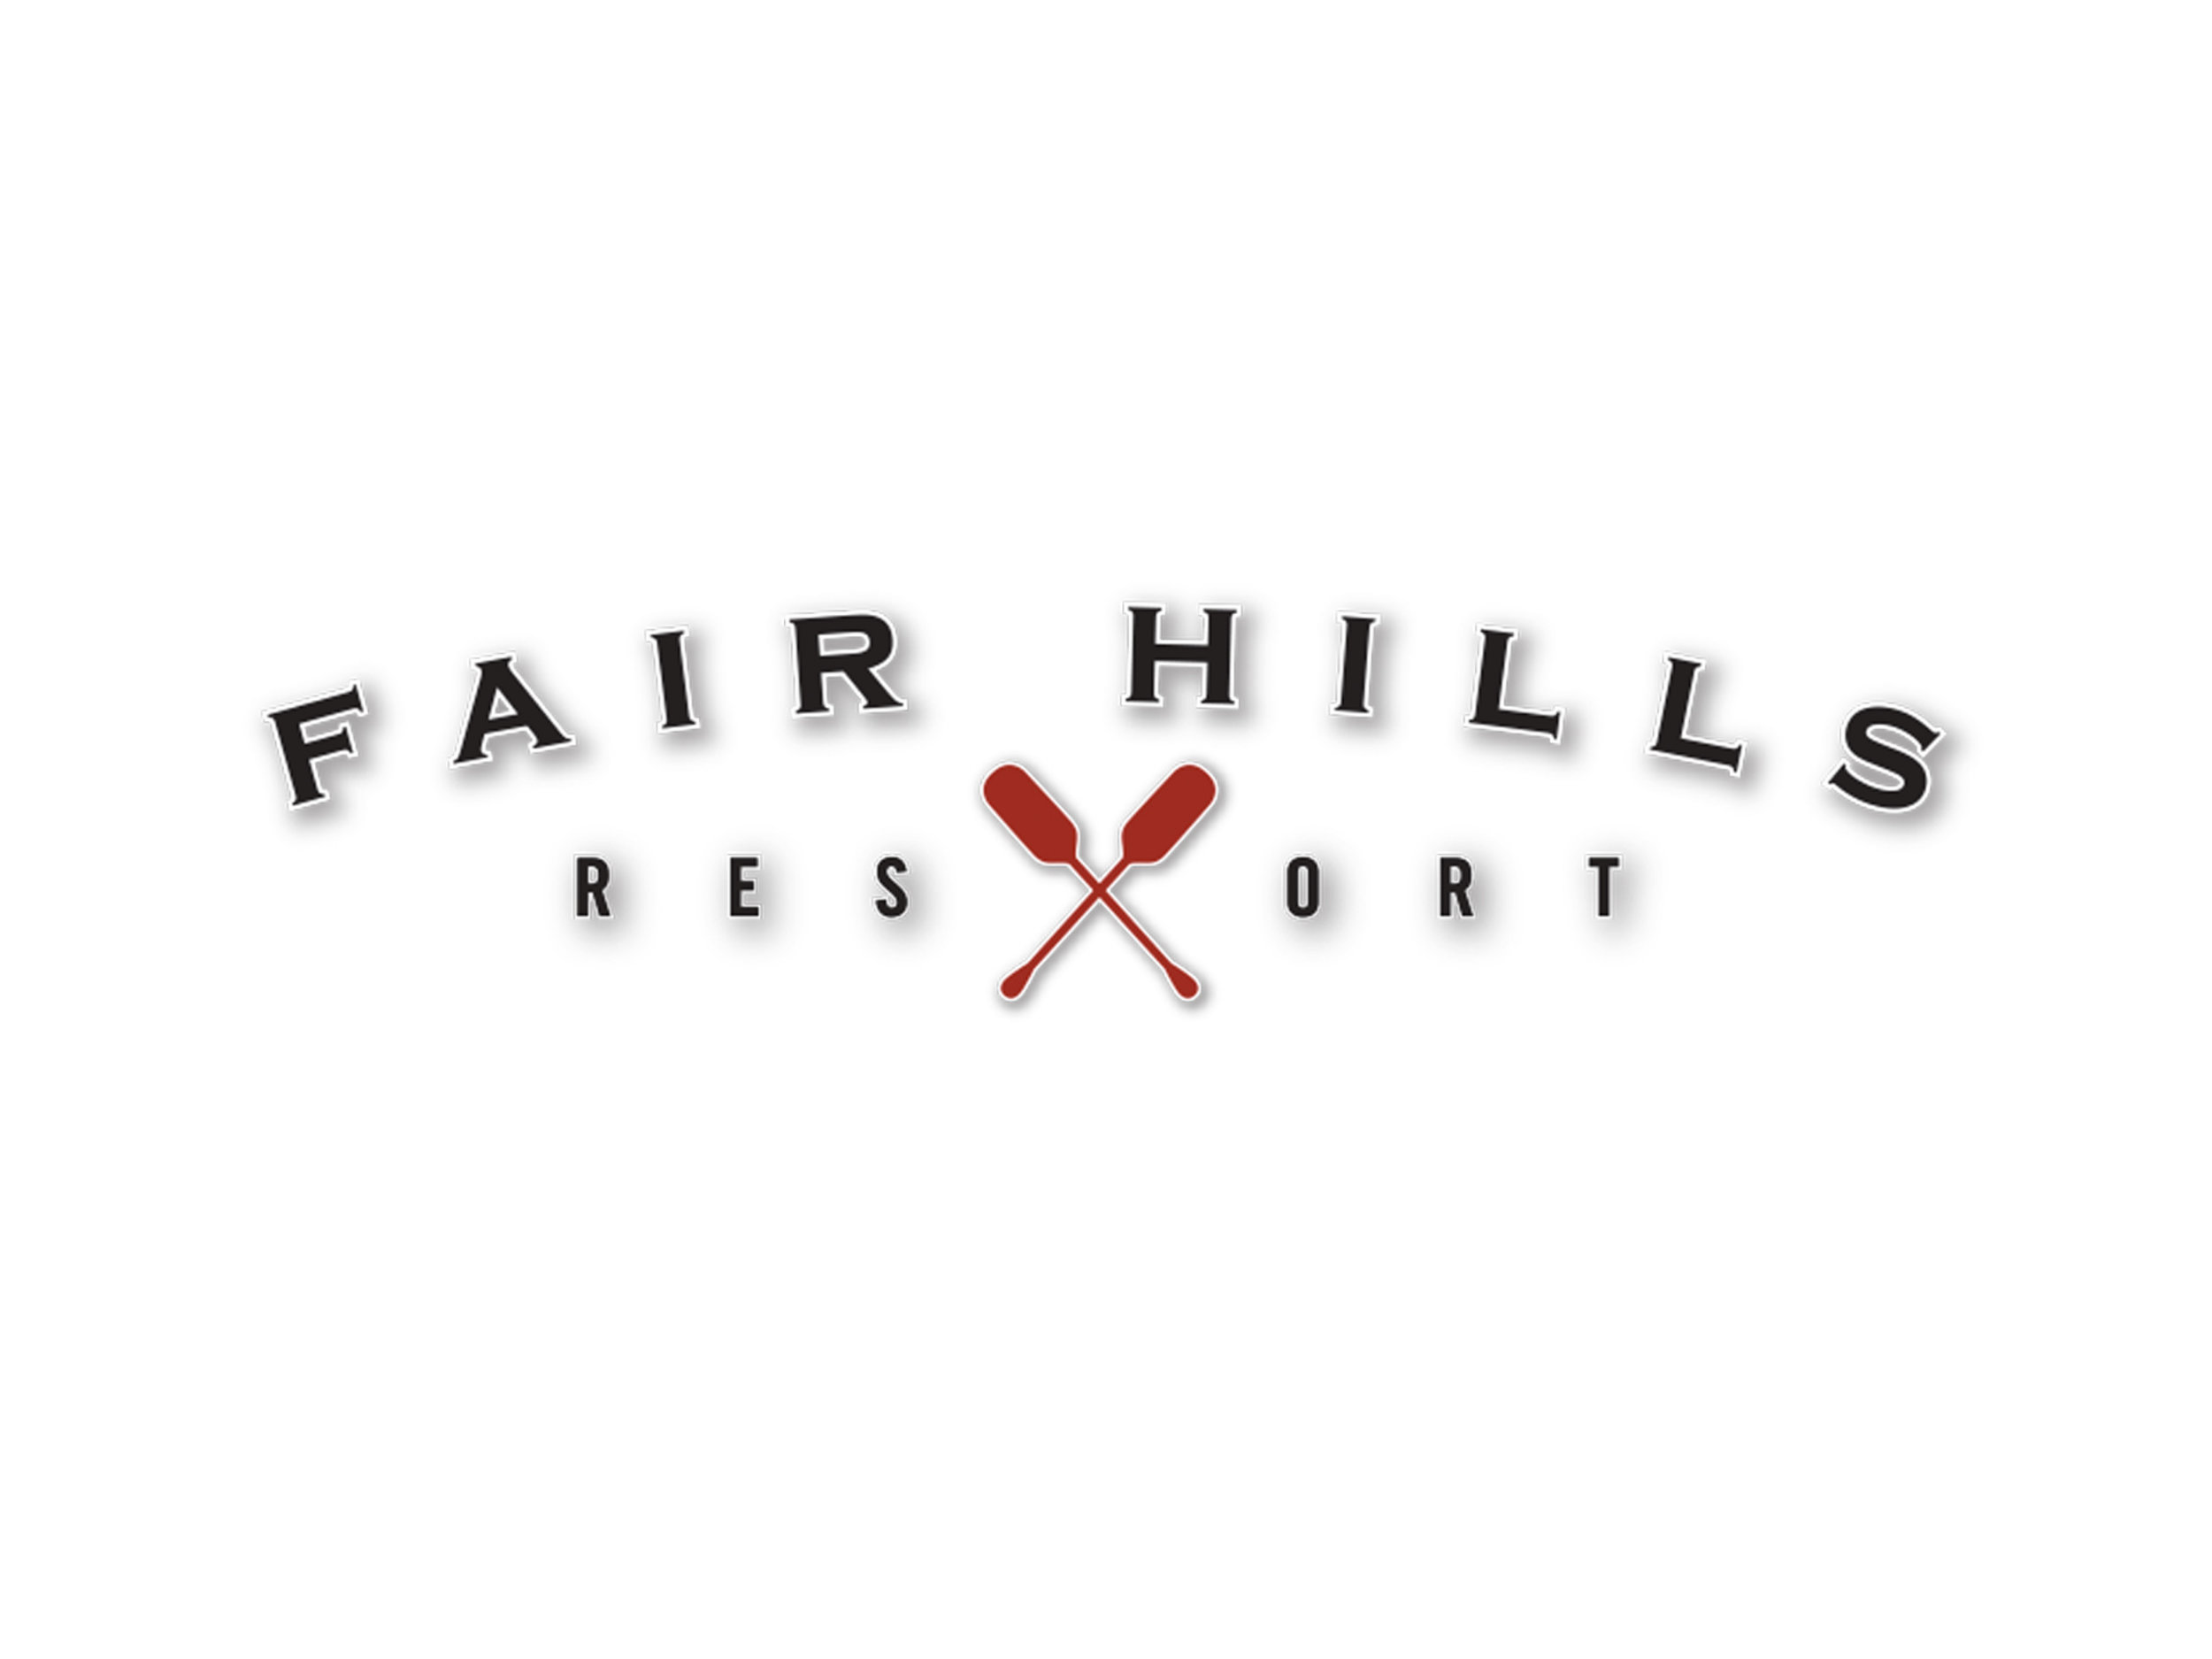 CLICK HERE TO SEE OTHER ASSETS THAT WHOVILLE HAS CREATED FOR FAIR HILLS RESORT